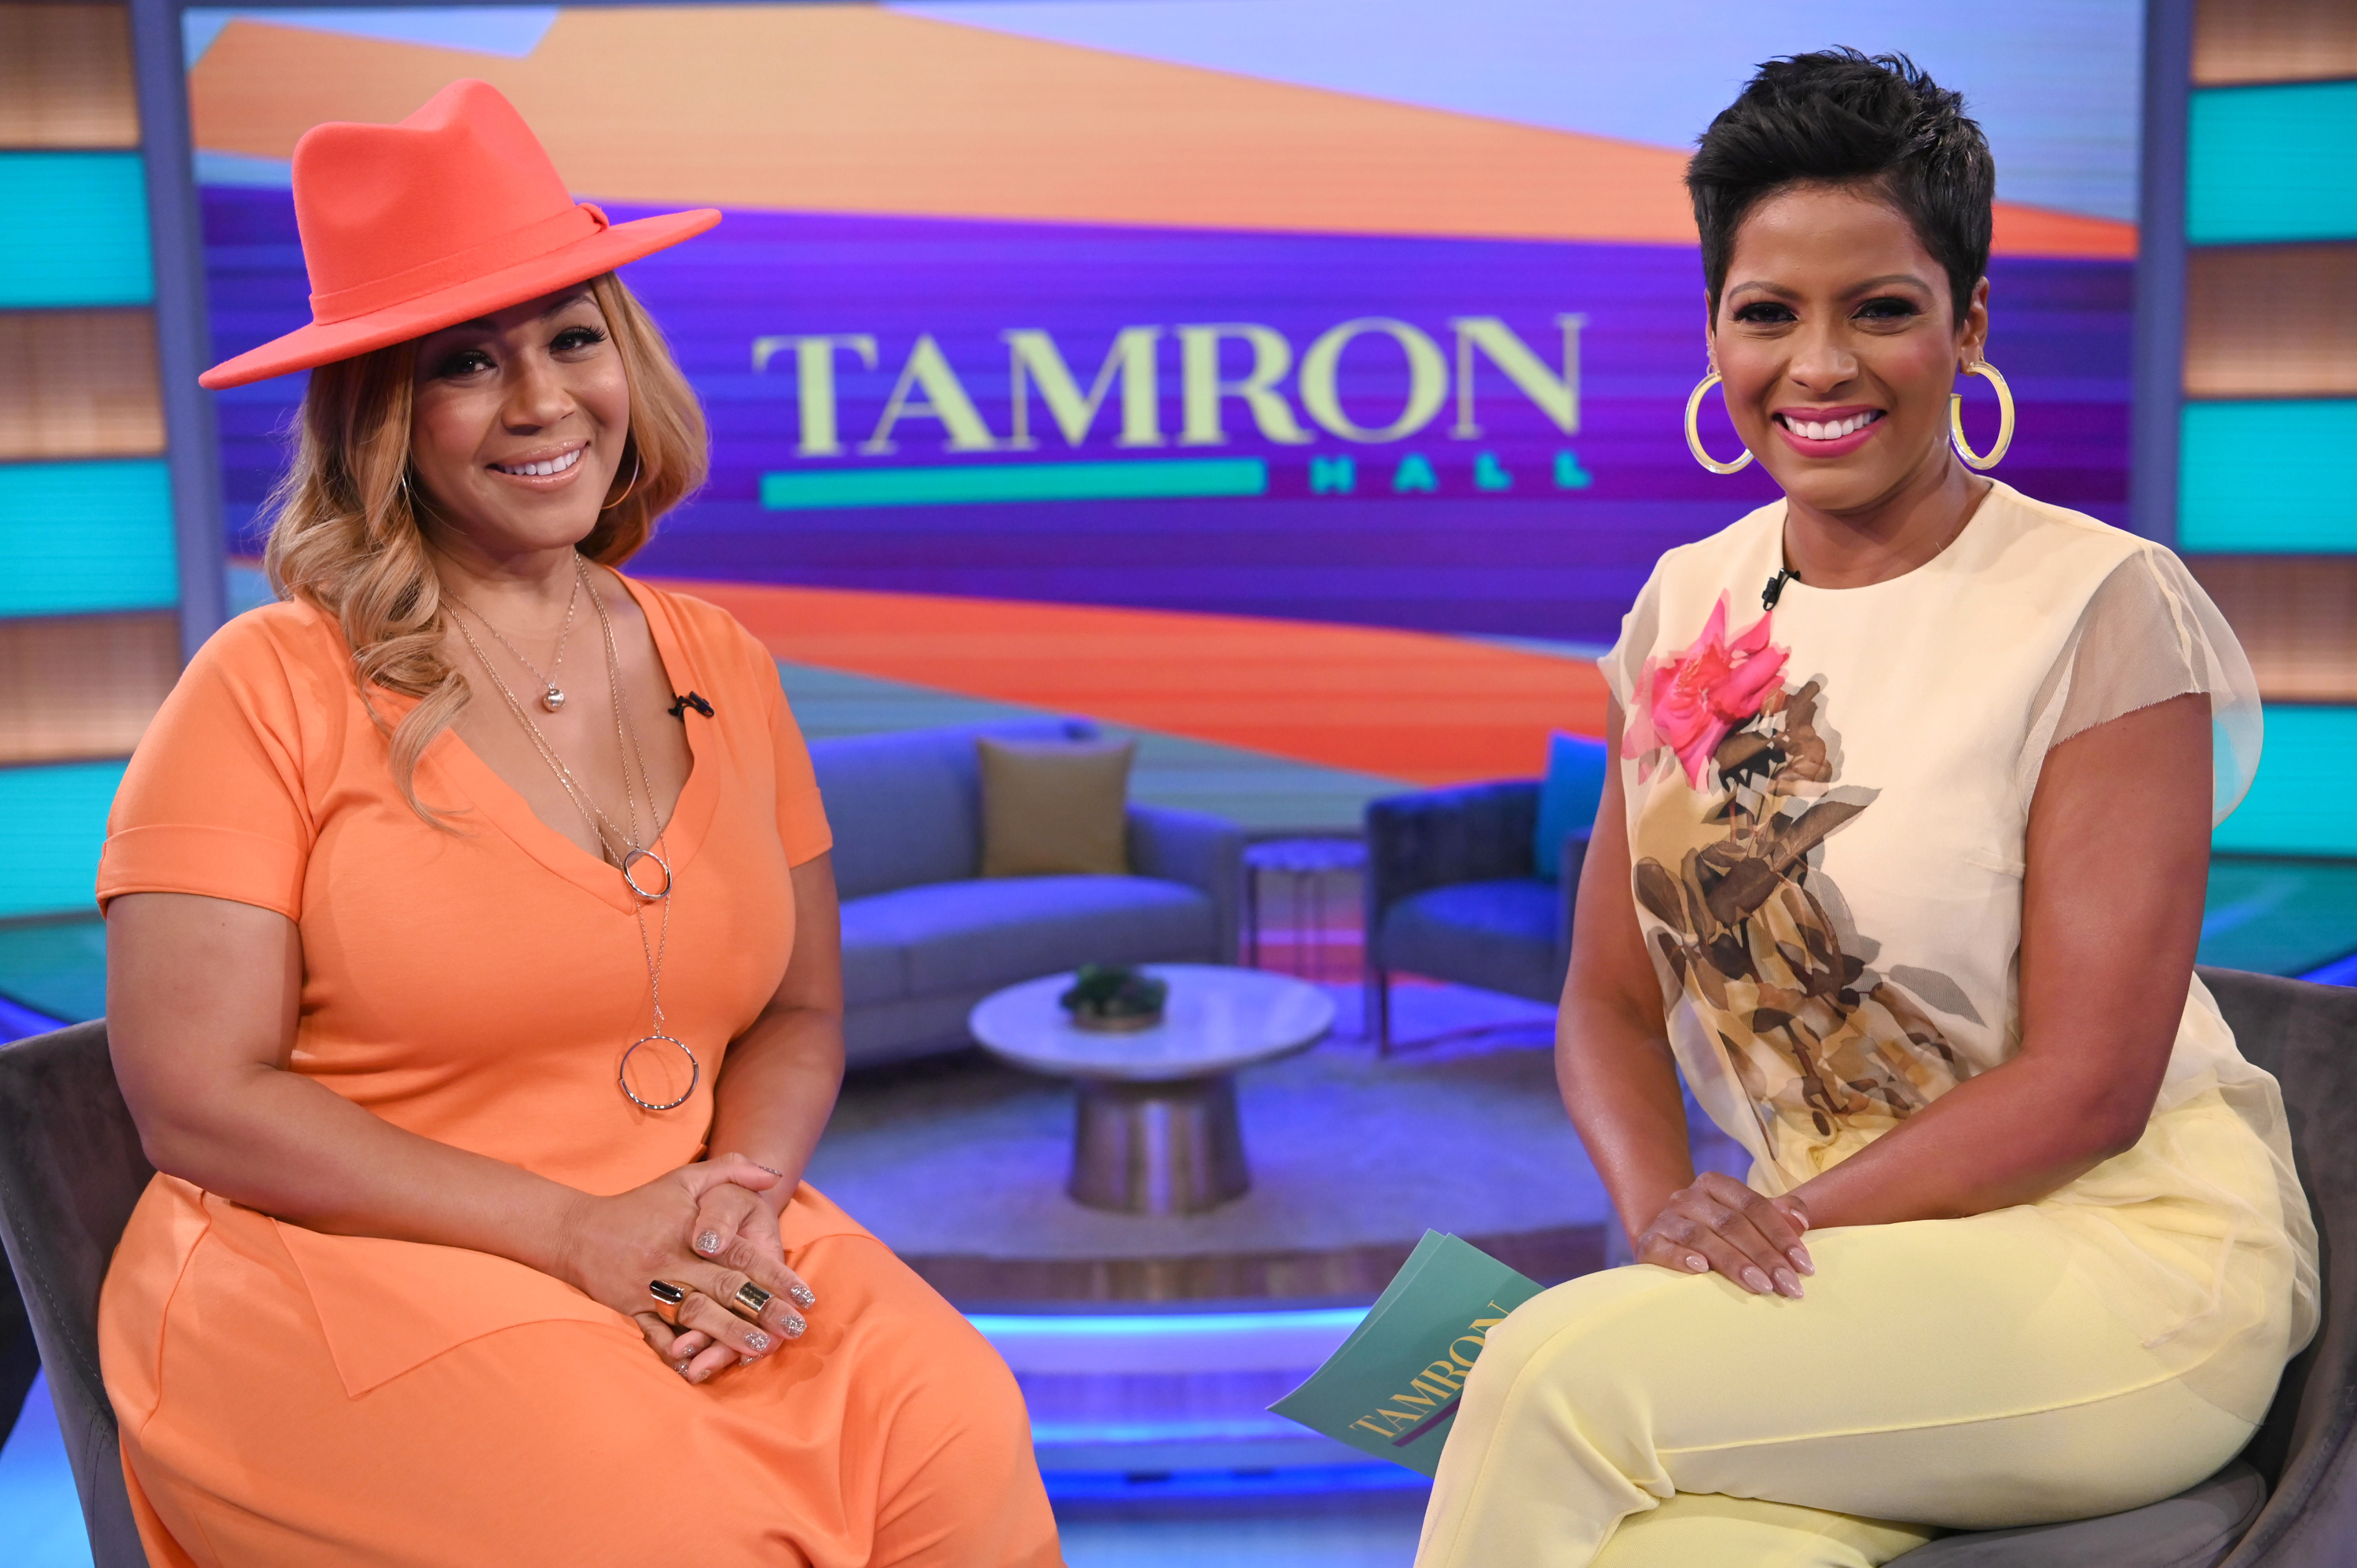 In Case You Missed It: Erica Campbell(Mary Mary) Discusses Her Daughter's Body Image And Husband's Infidelity On Tamron Hall